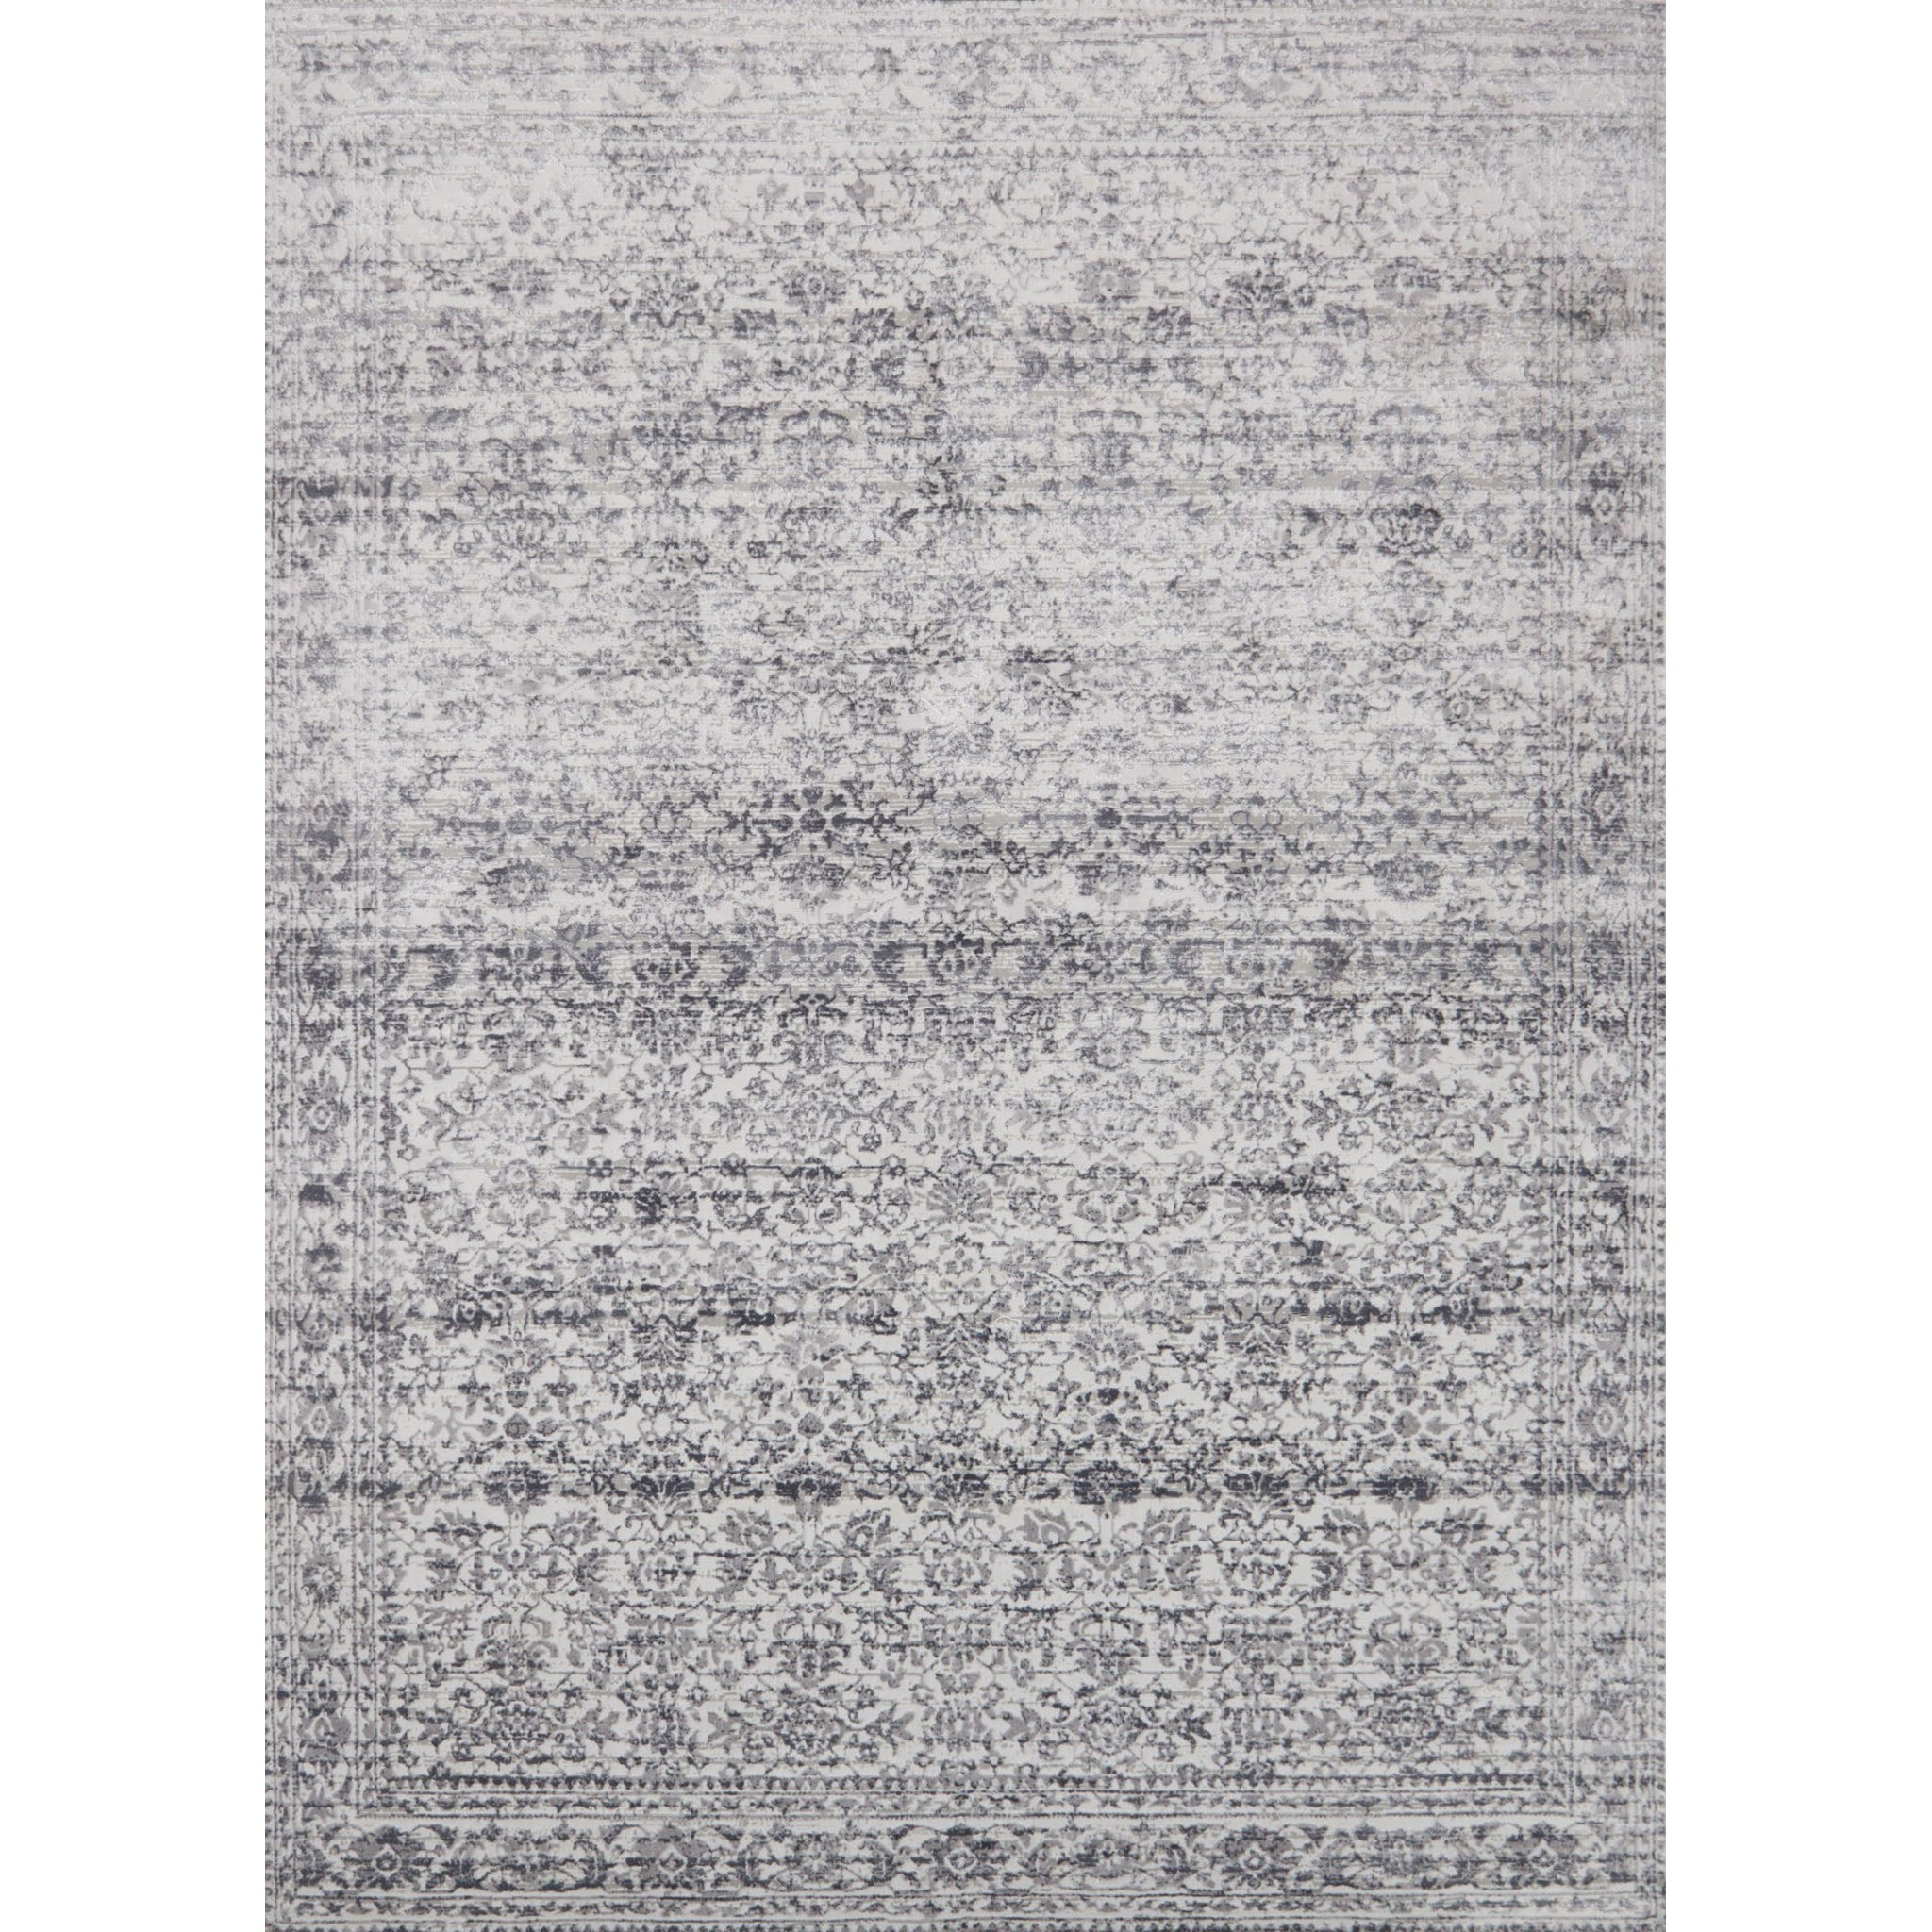 "Patina 12'-0"" x 15'-0"" Area Rug by Loloi Rugs at Virginia Furniture Market"